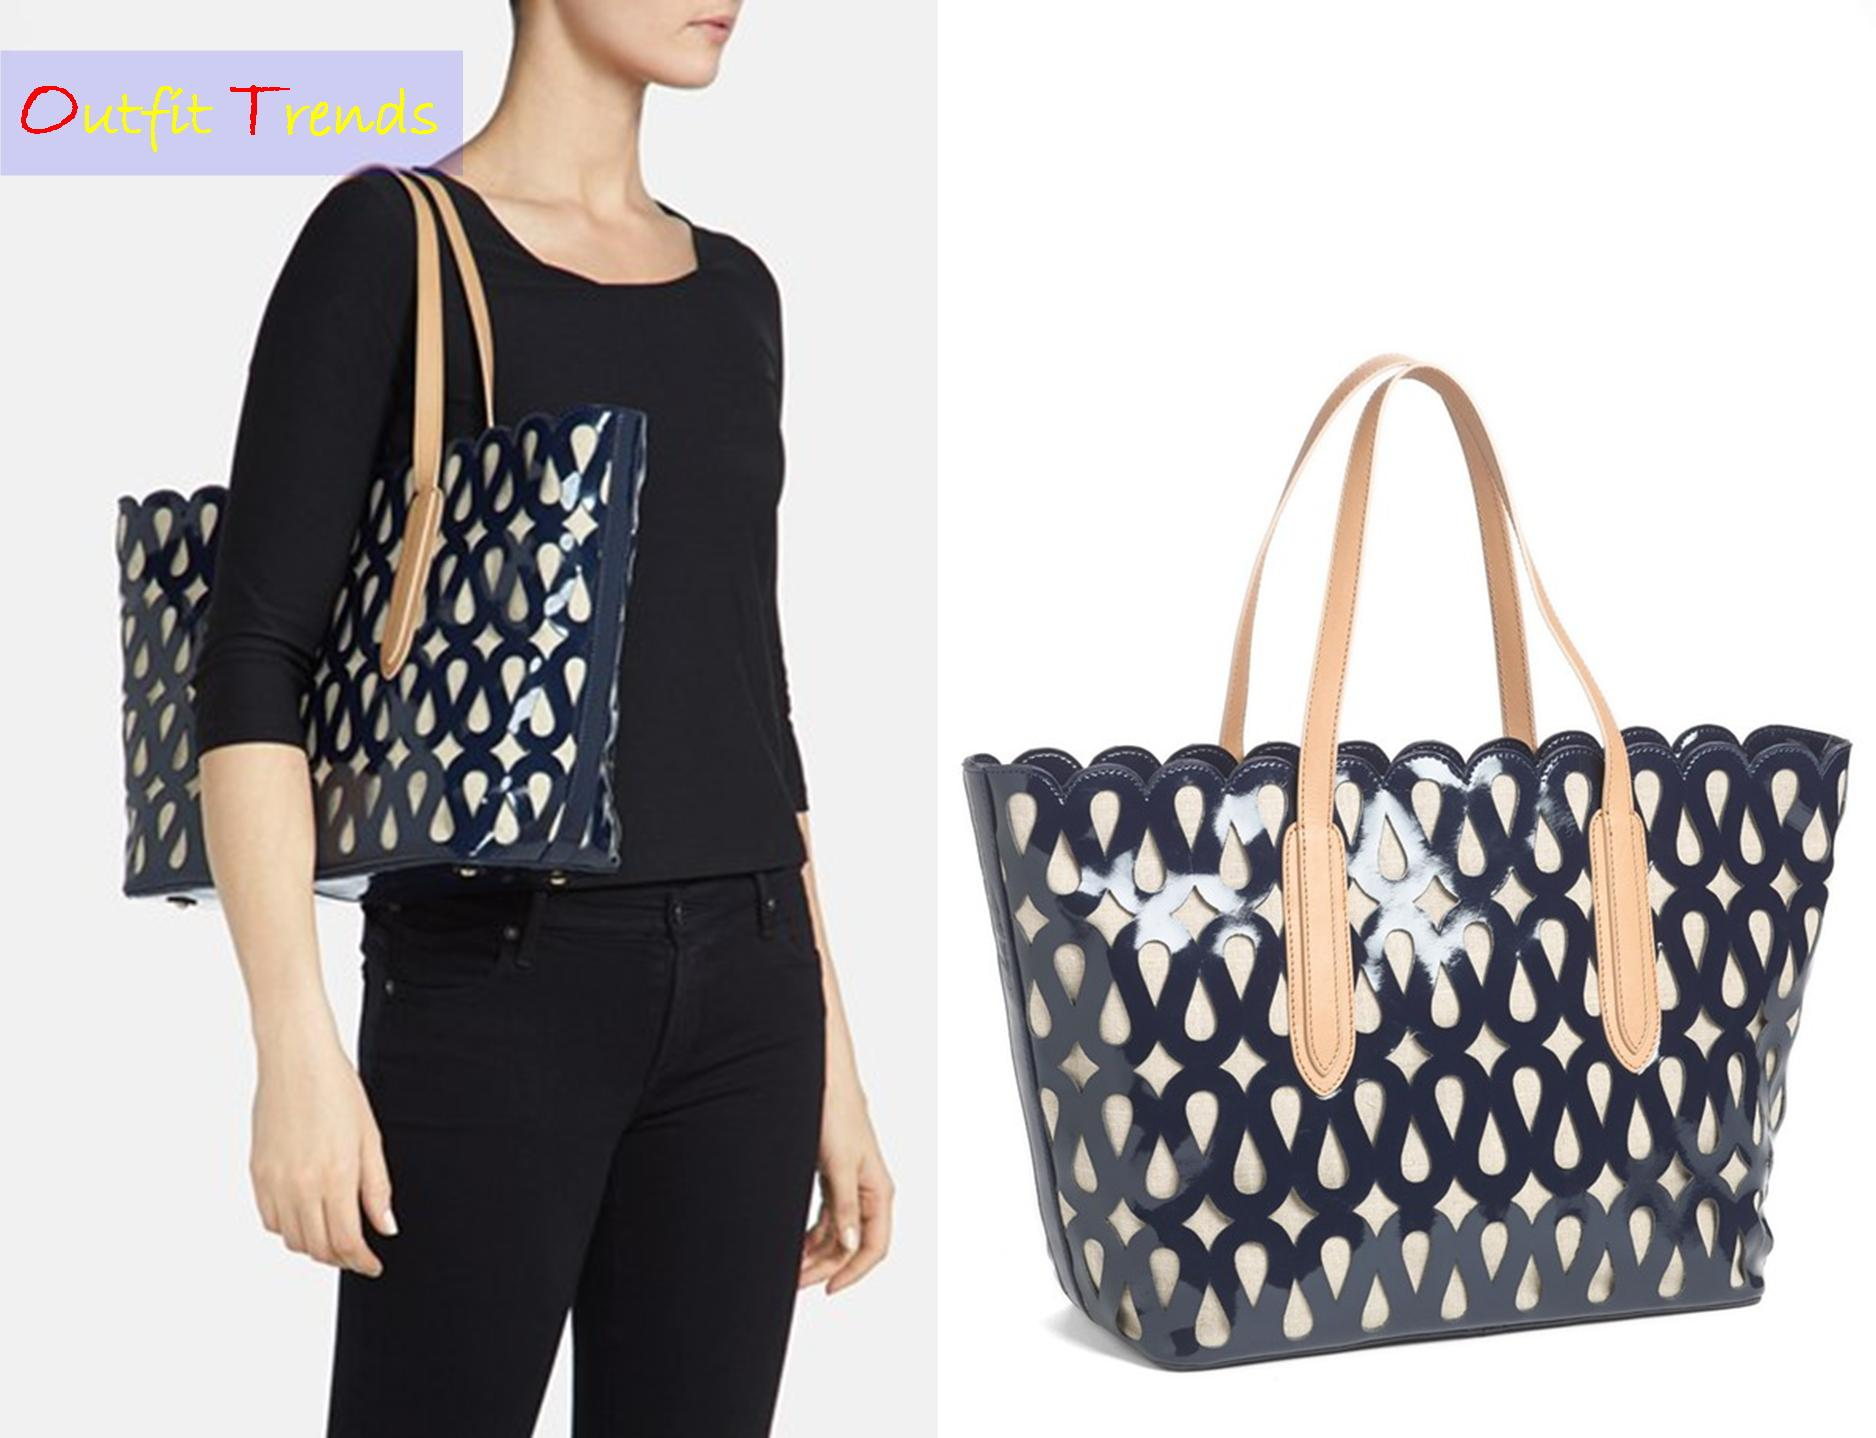 Laser-Cut-Tote 13 Most Fashionable and Stylish Tote Bags for Women